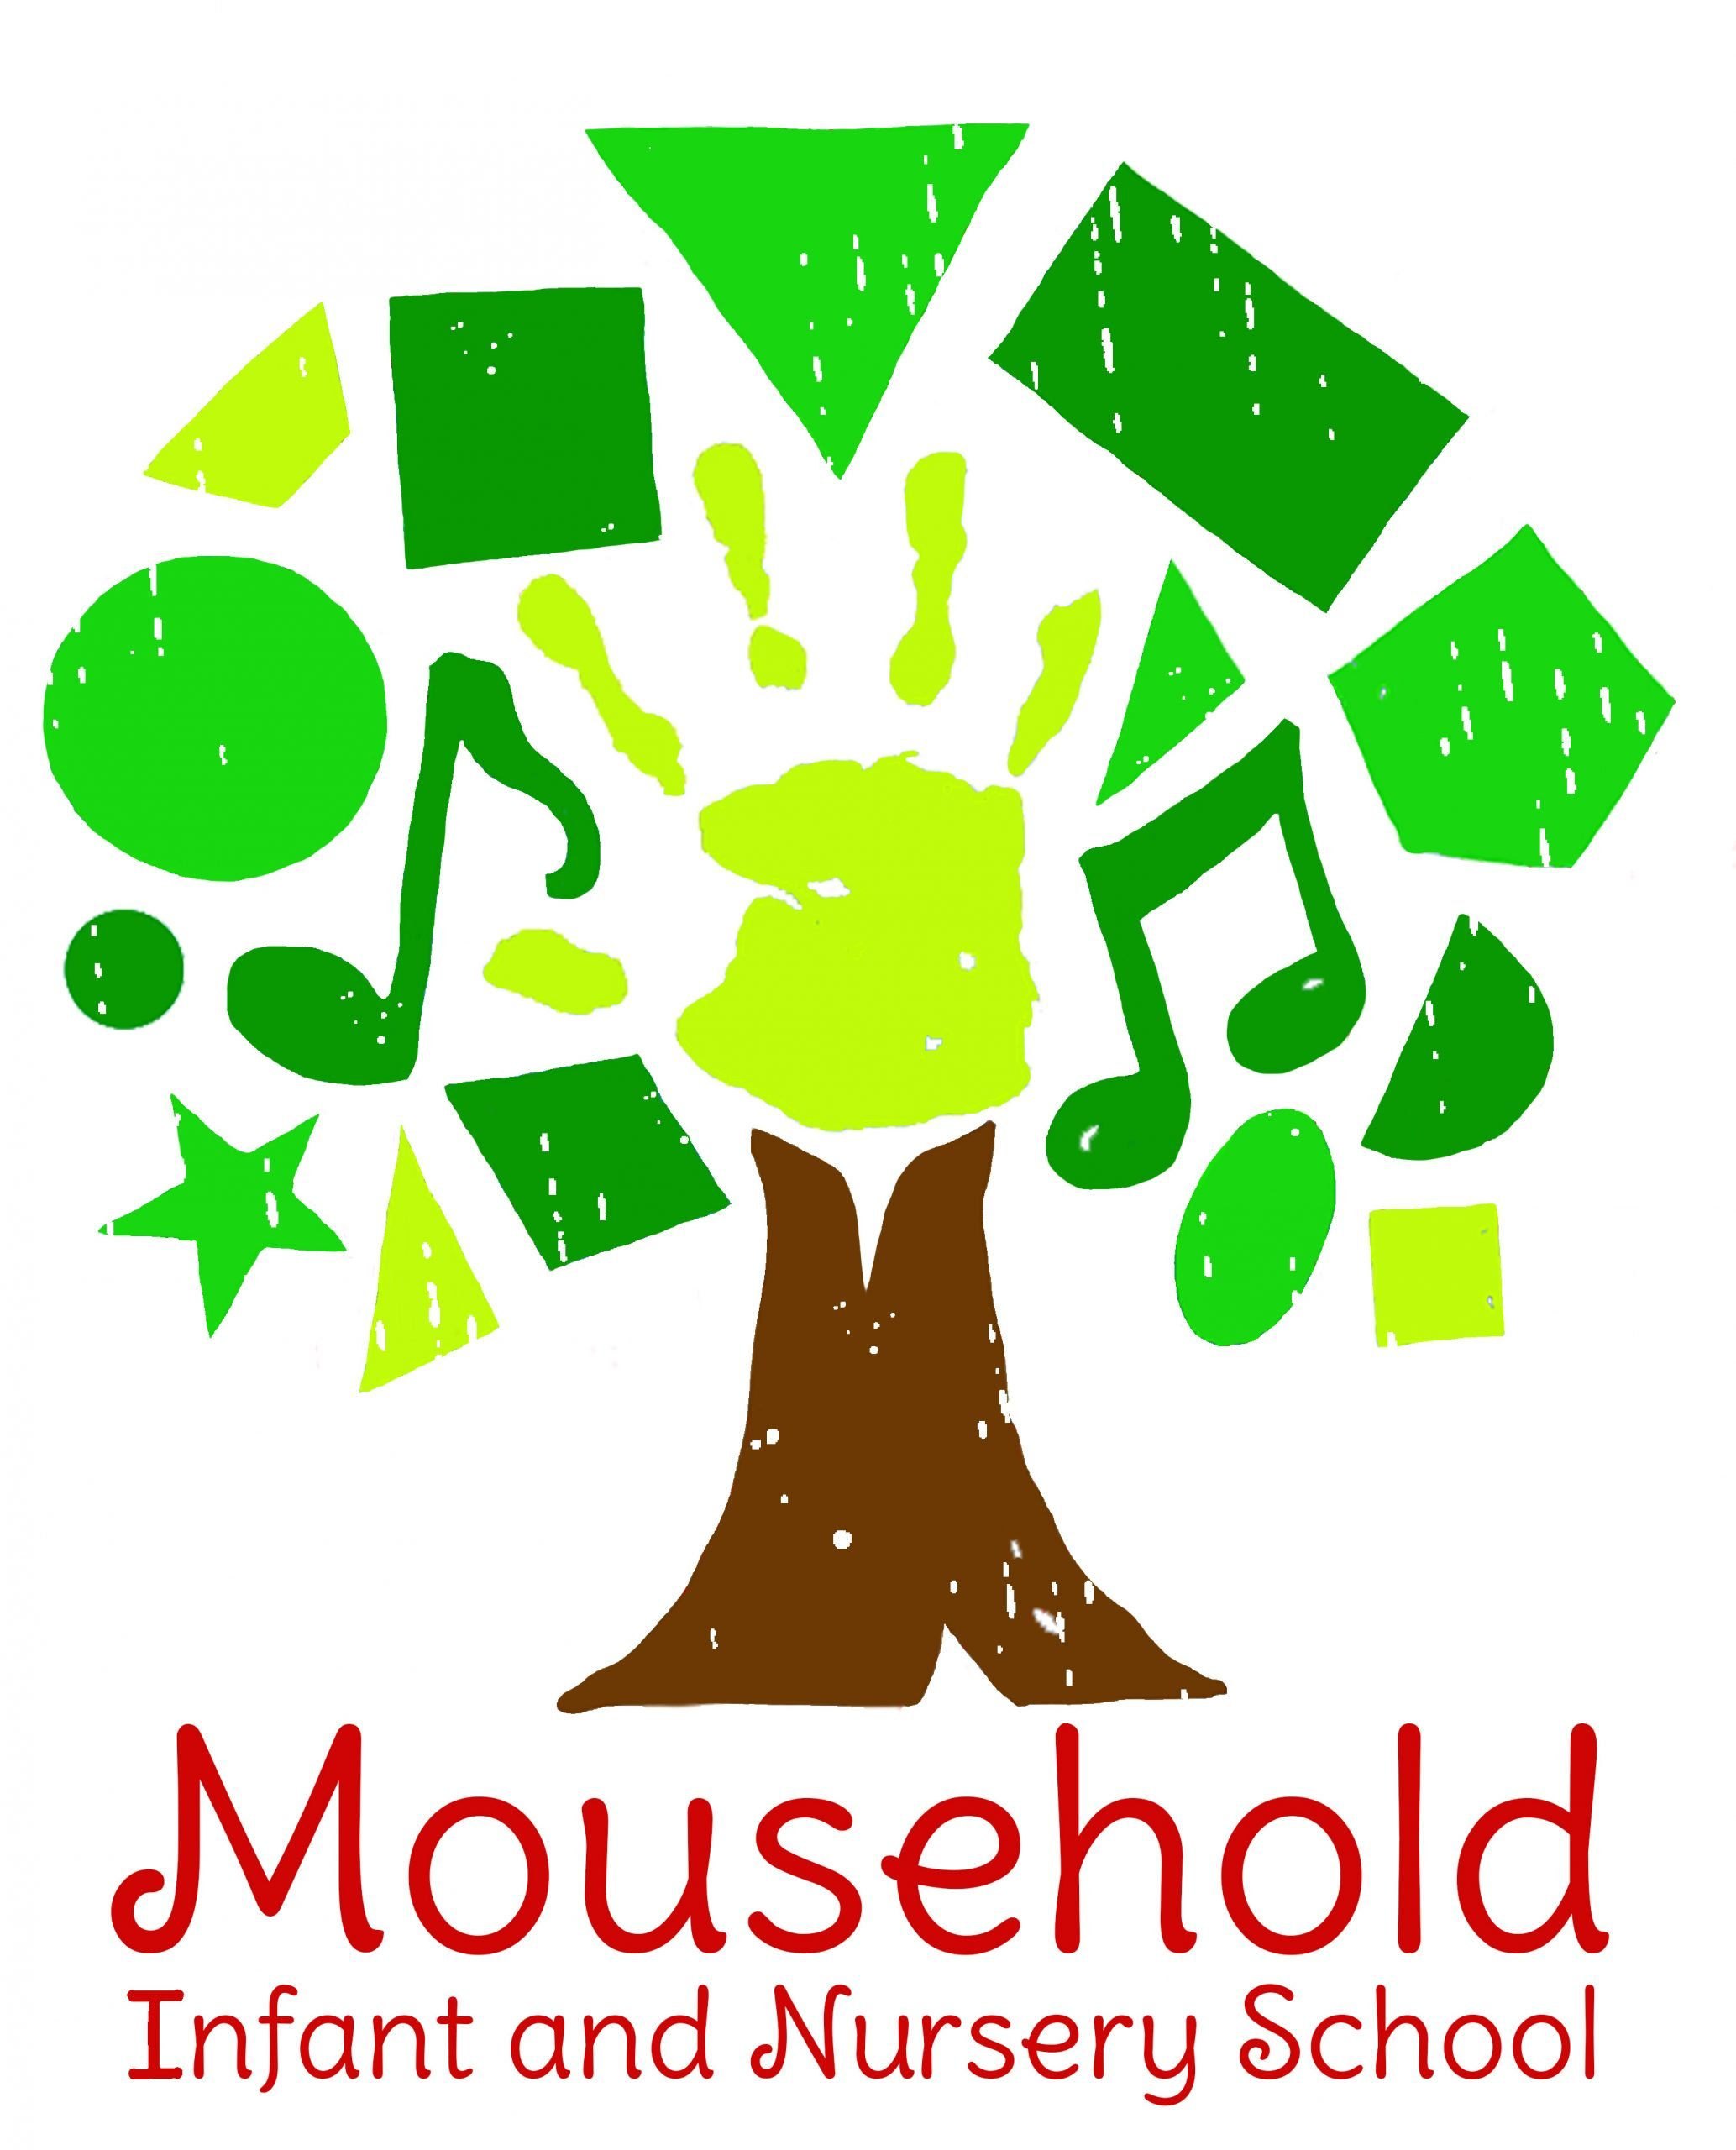 Mousehold Infant and Nursery School